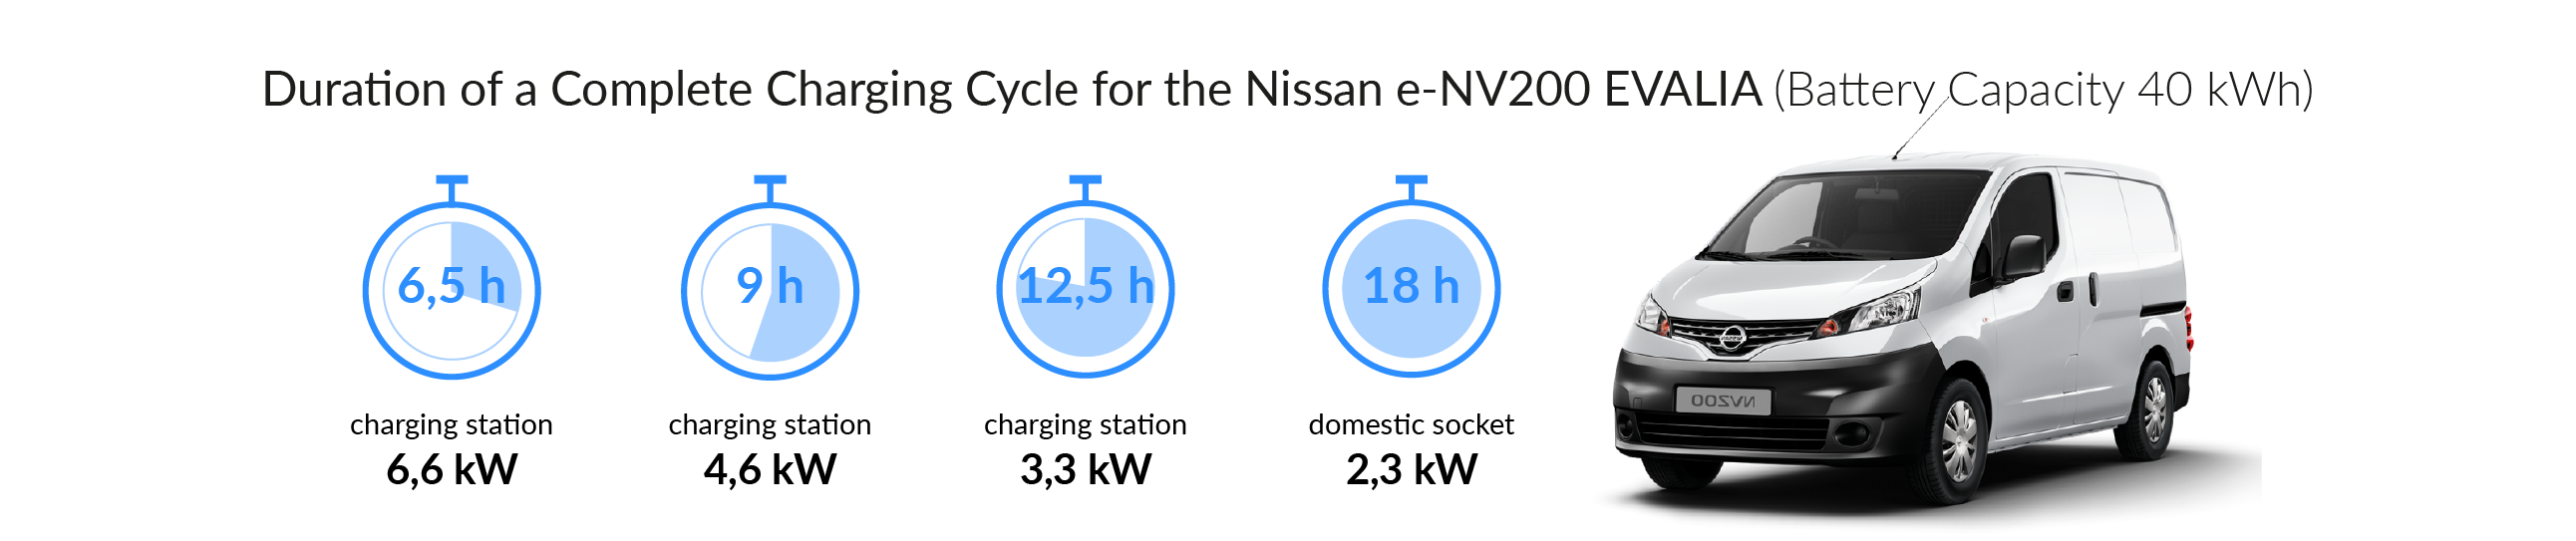 Charging time for your NISSAN EVALIA e-NV200